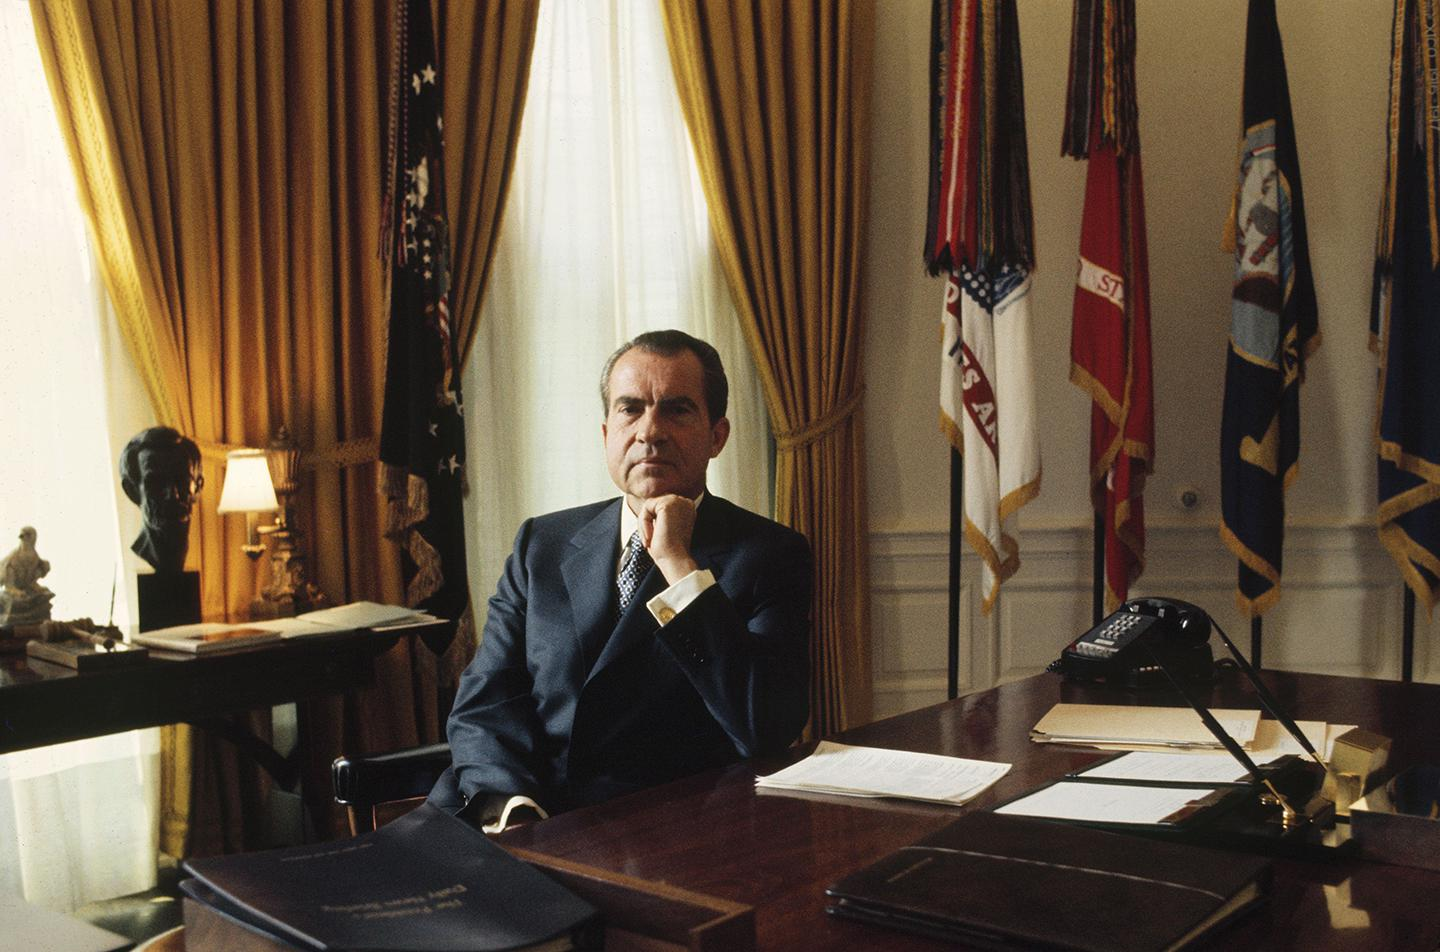 Richard Nixon in the Oval Office of the White House in the 1970s.